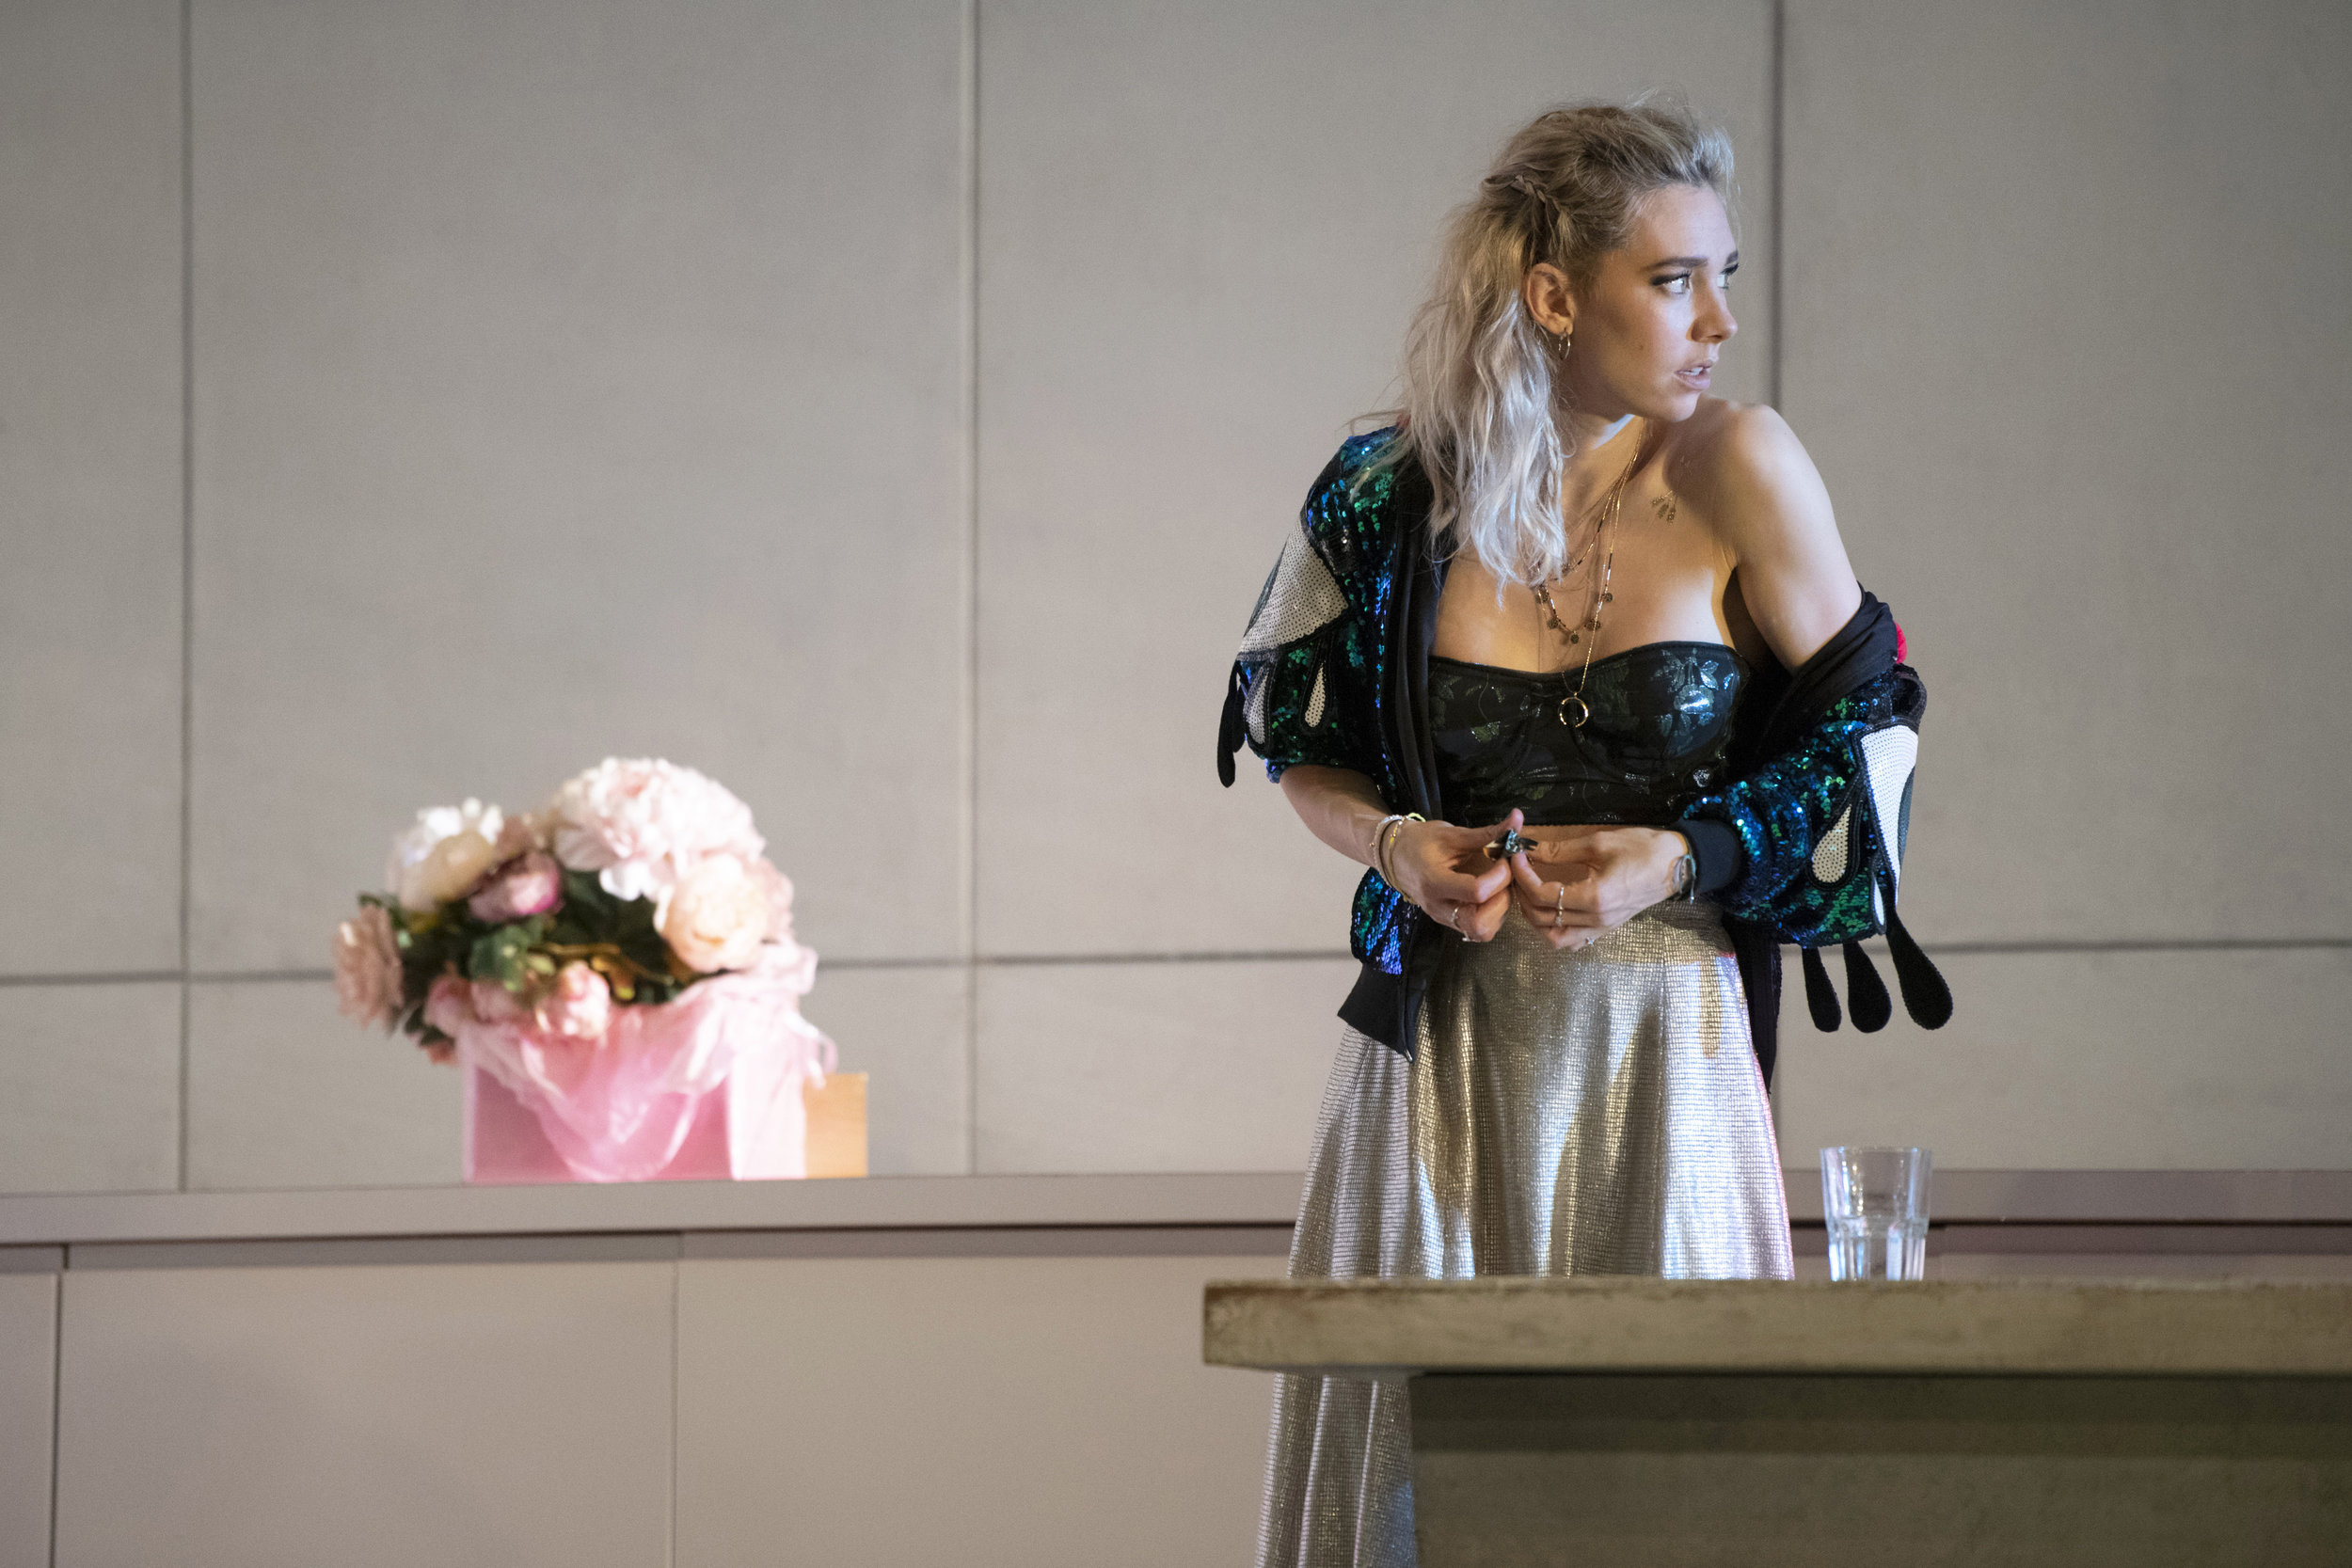 NTL 2018 Julie at the National Theatre. Vanessa Kirby as Julie (c) Richard H Smith (2).jpg